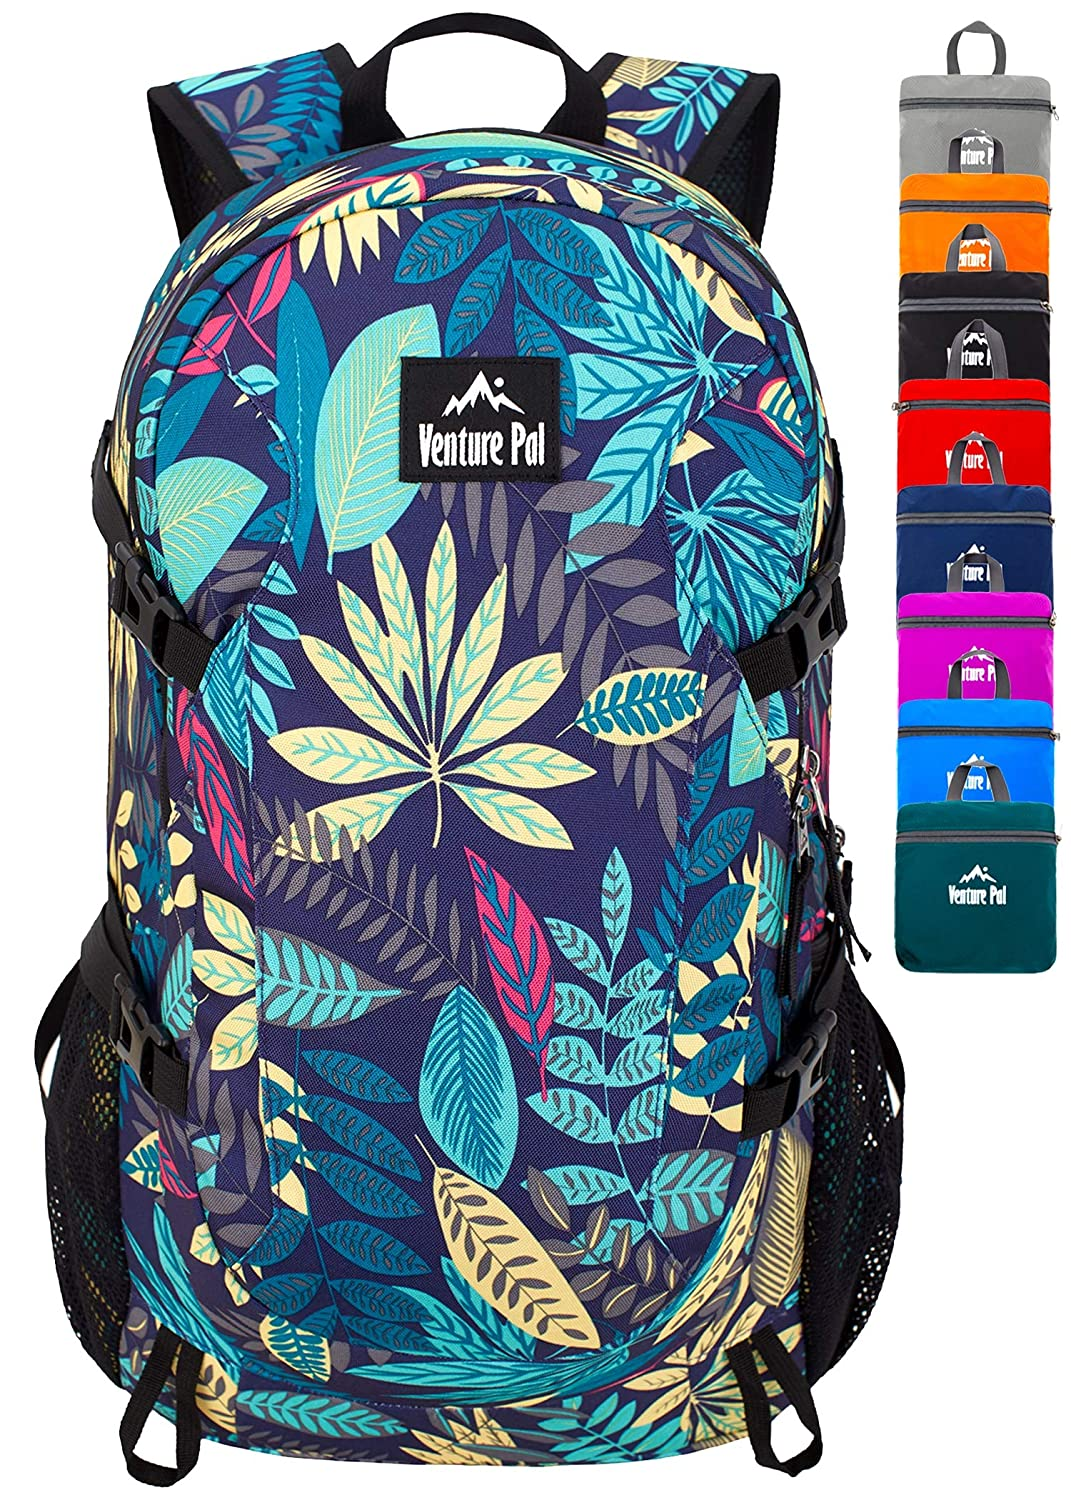 The Venture Pal 40L Backpack travel product recommended by Sam Maizlech on Lifney.